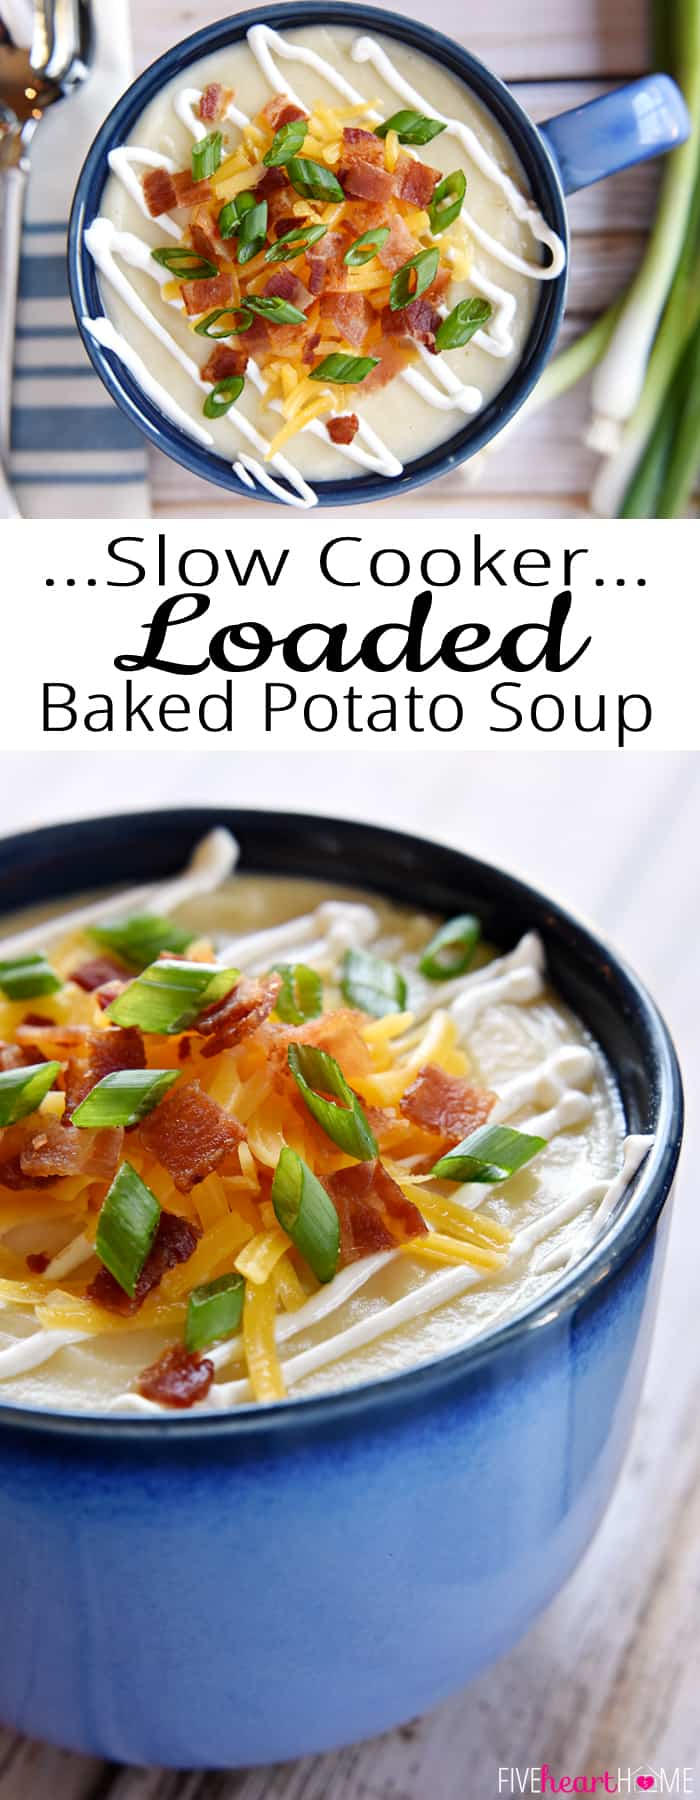 Slow Cooker Loaded Baked Potato Soup ~ a smooth and creamy crock pot soup garnished with a variety of toppings, from sour cream and shredded cheese to crispy bacon and green onions | FiveHeartHome.com via @fivehearthome